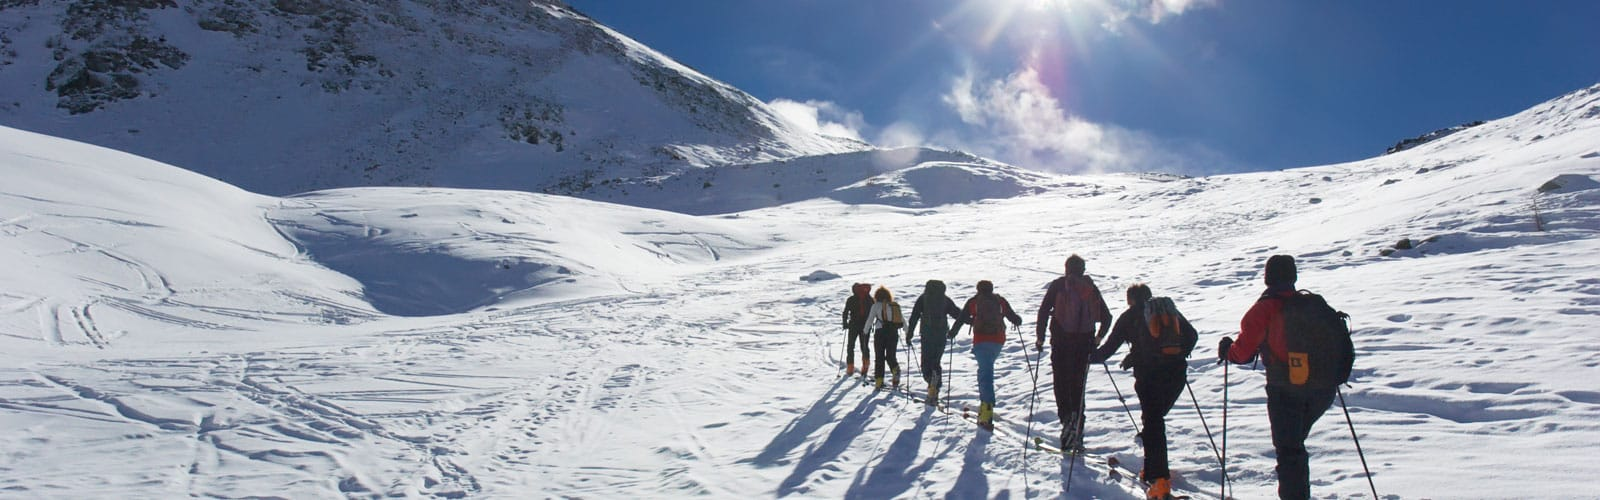 Avalanche Safety Tips